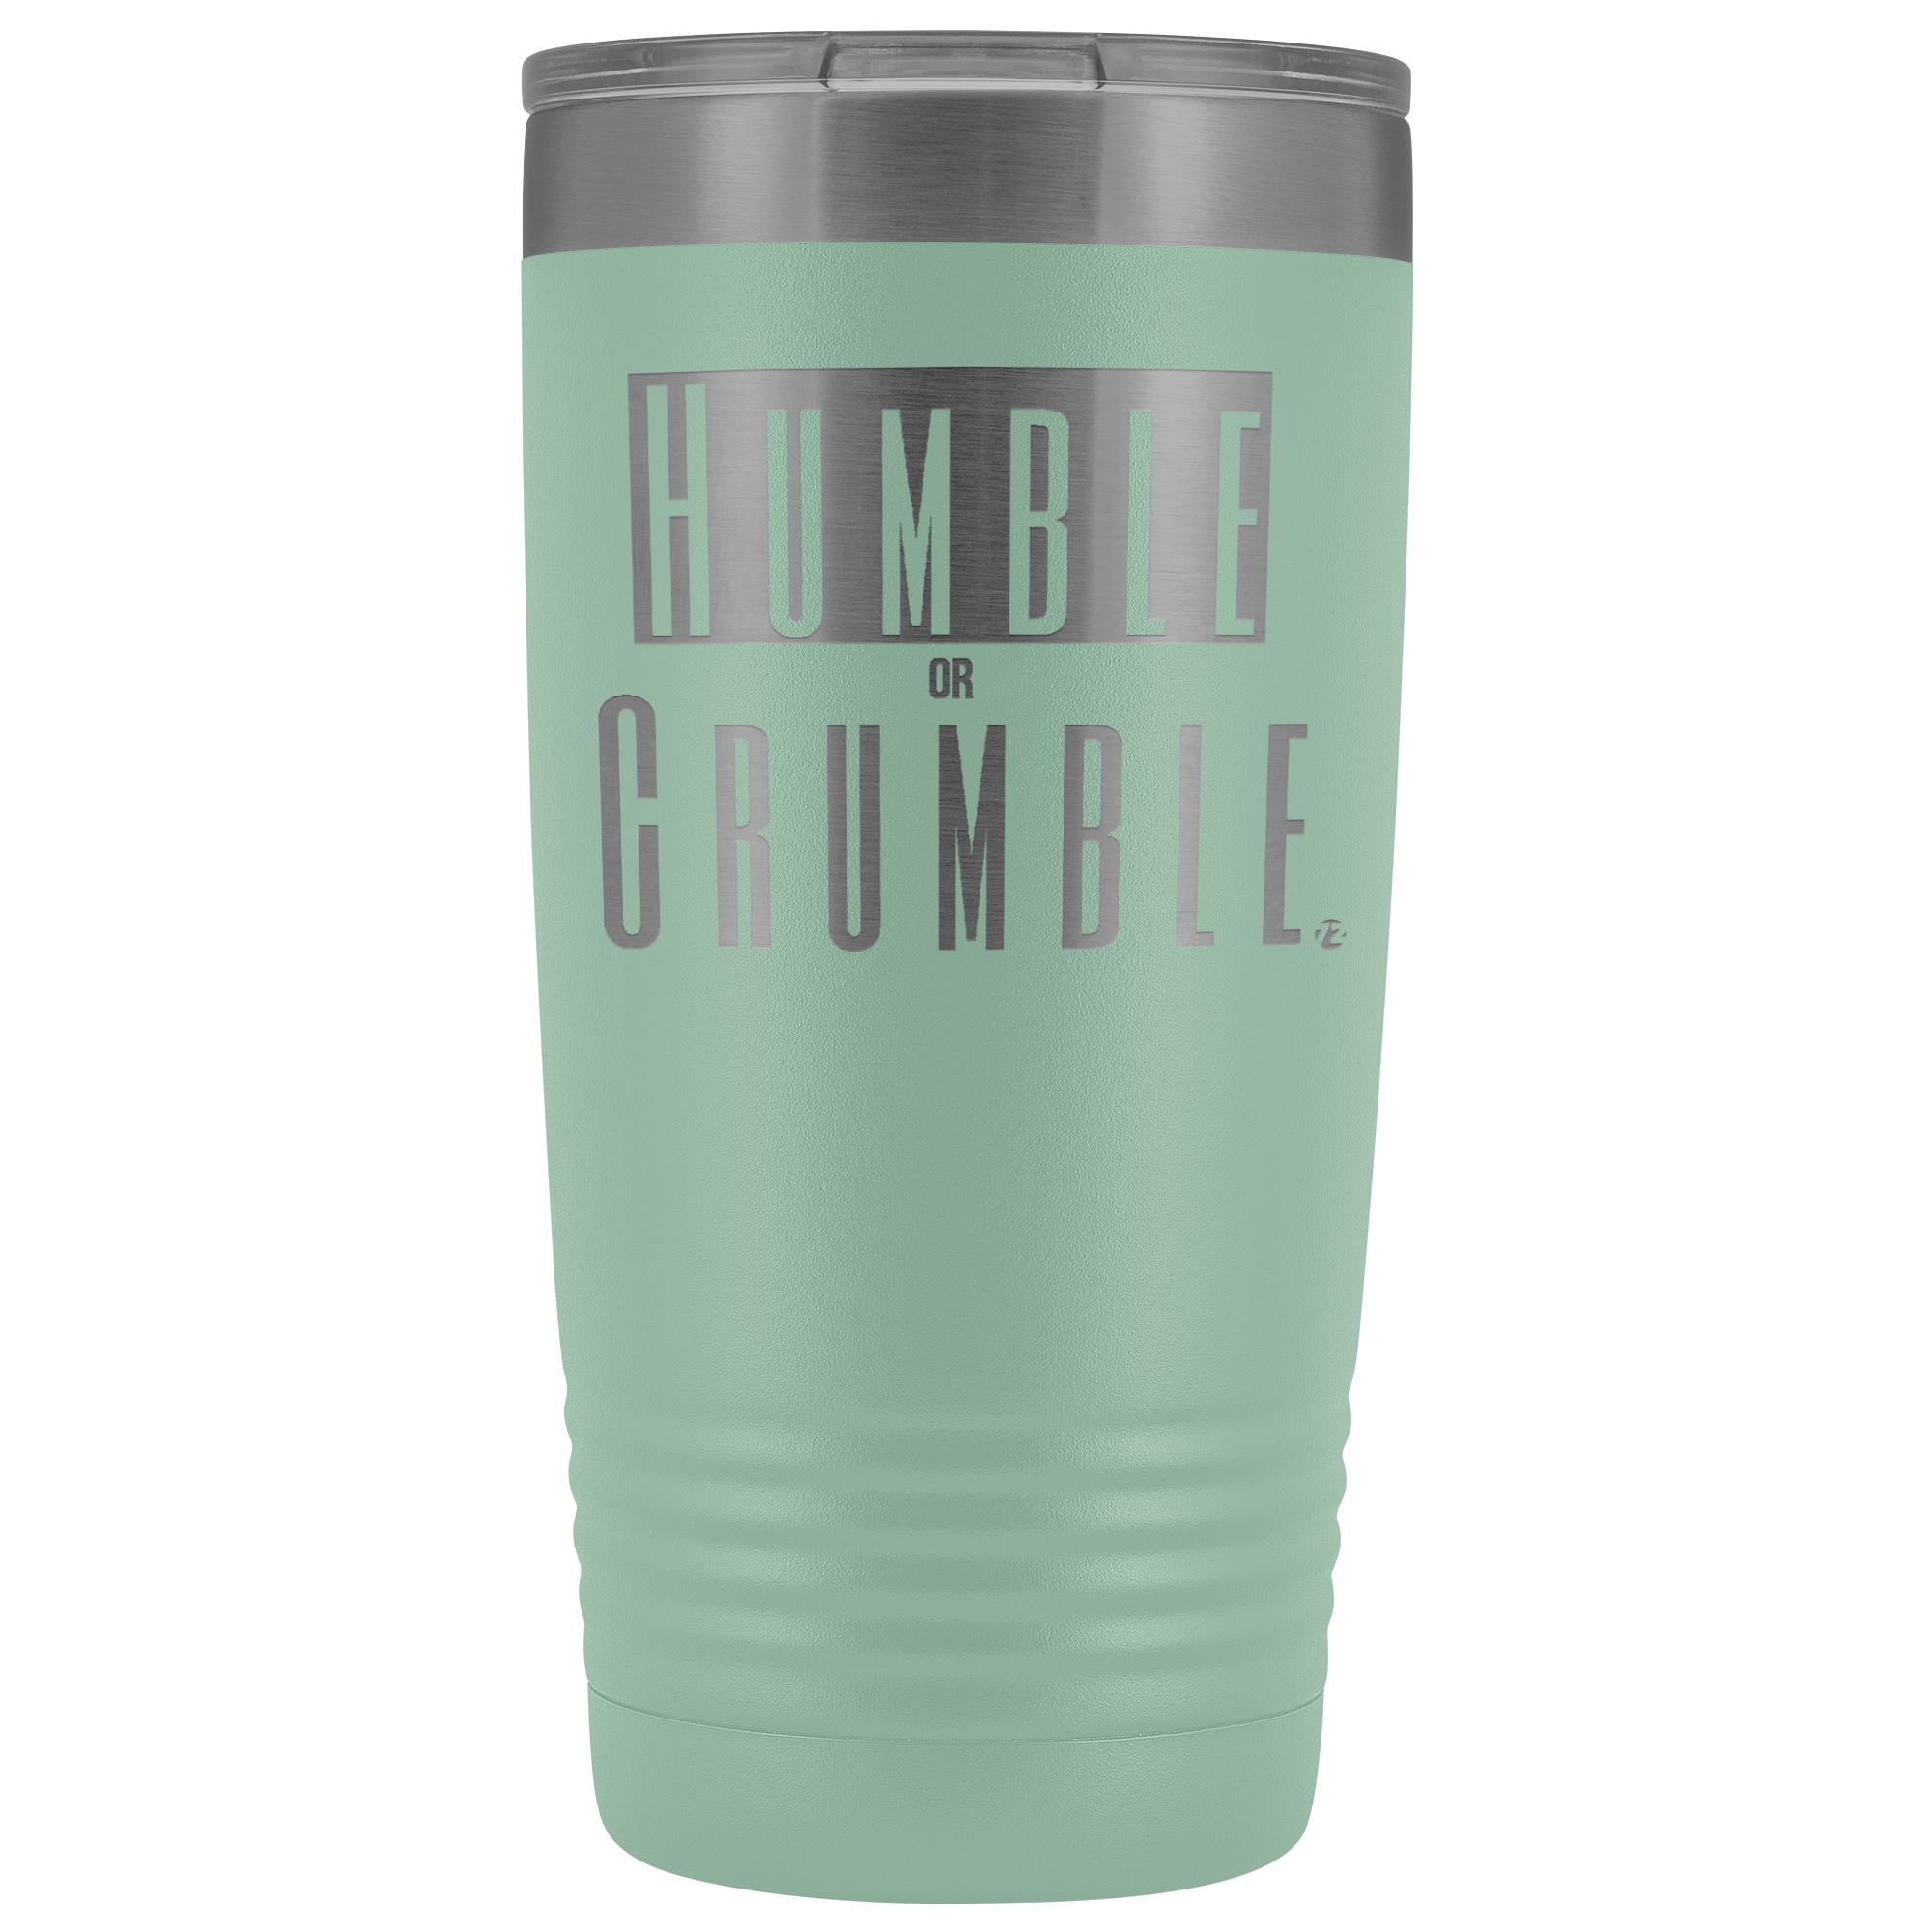 20 oz. Humble or Crumble Tumbler